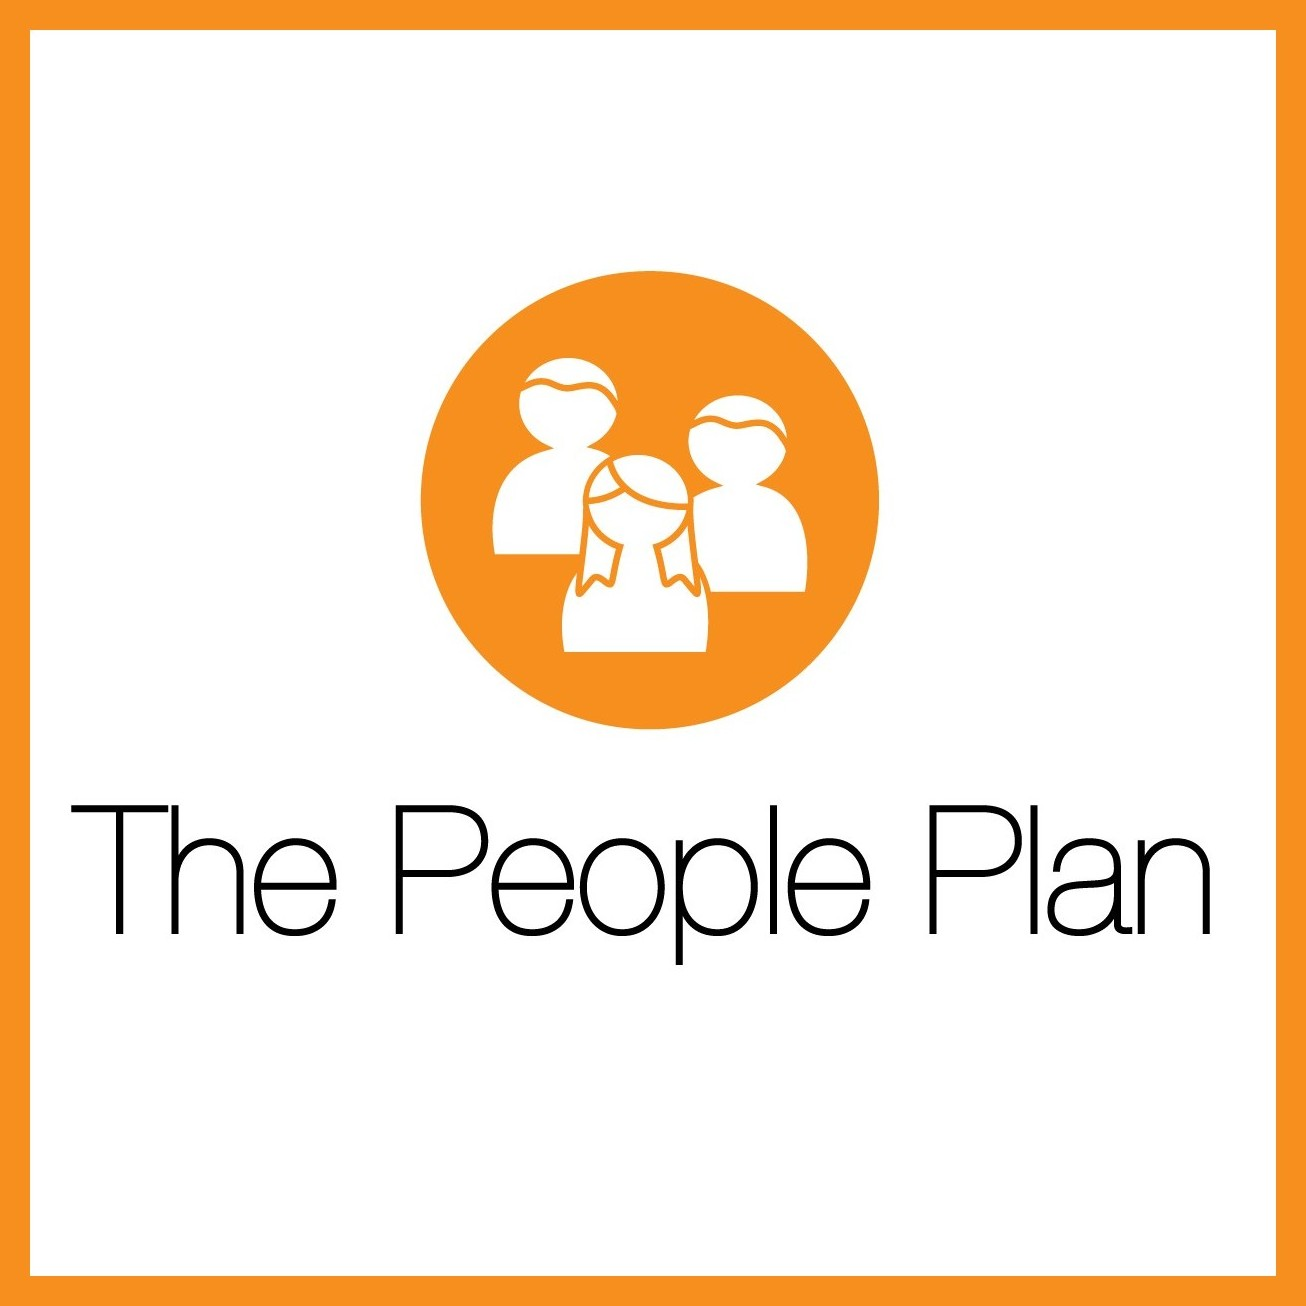 The People Plan